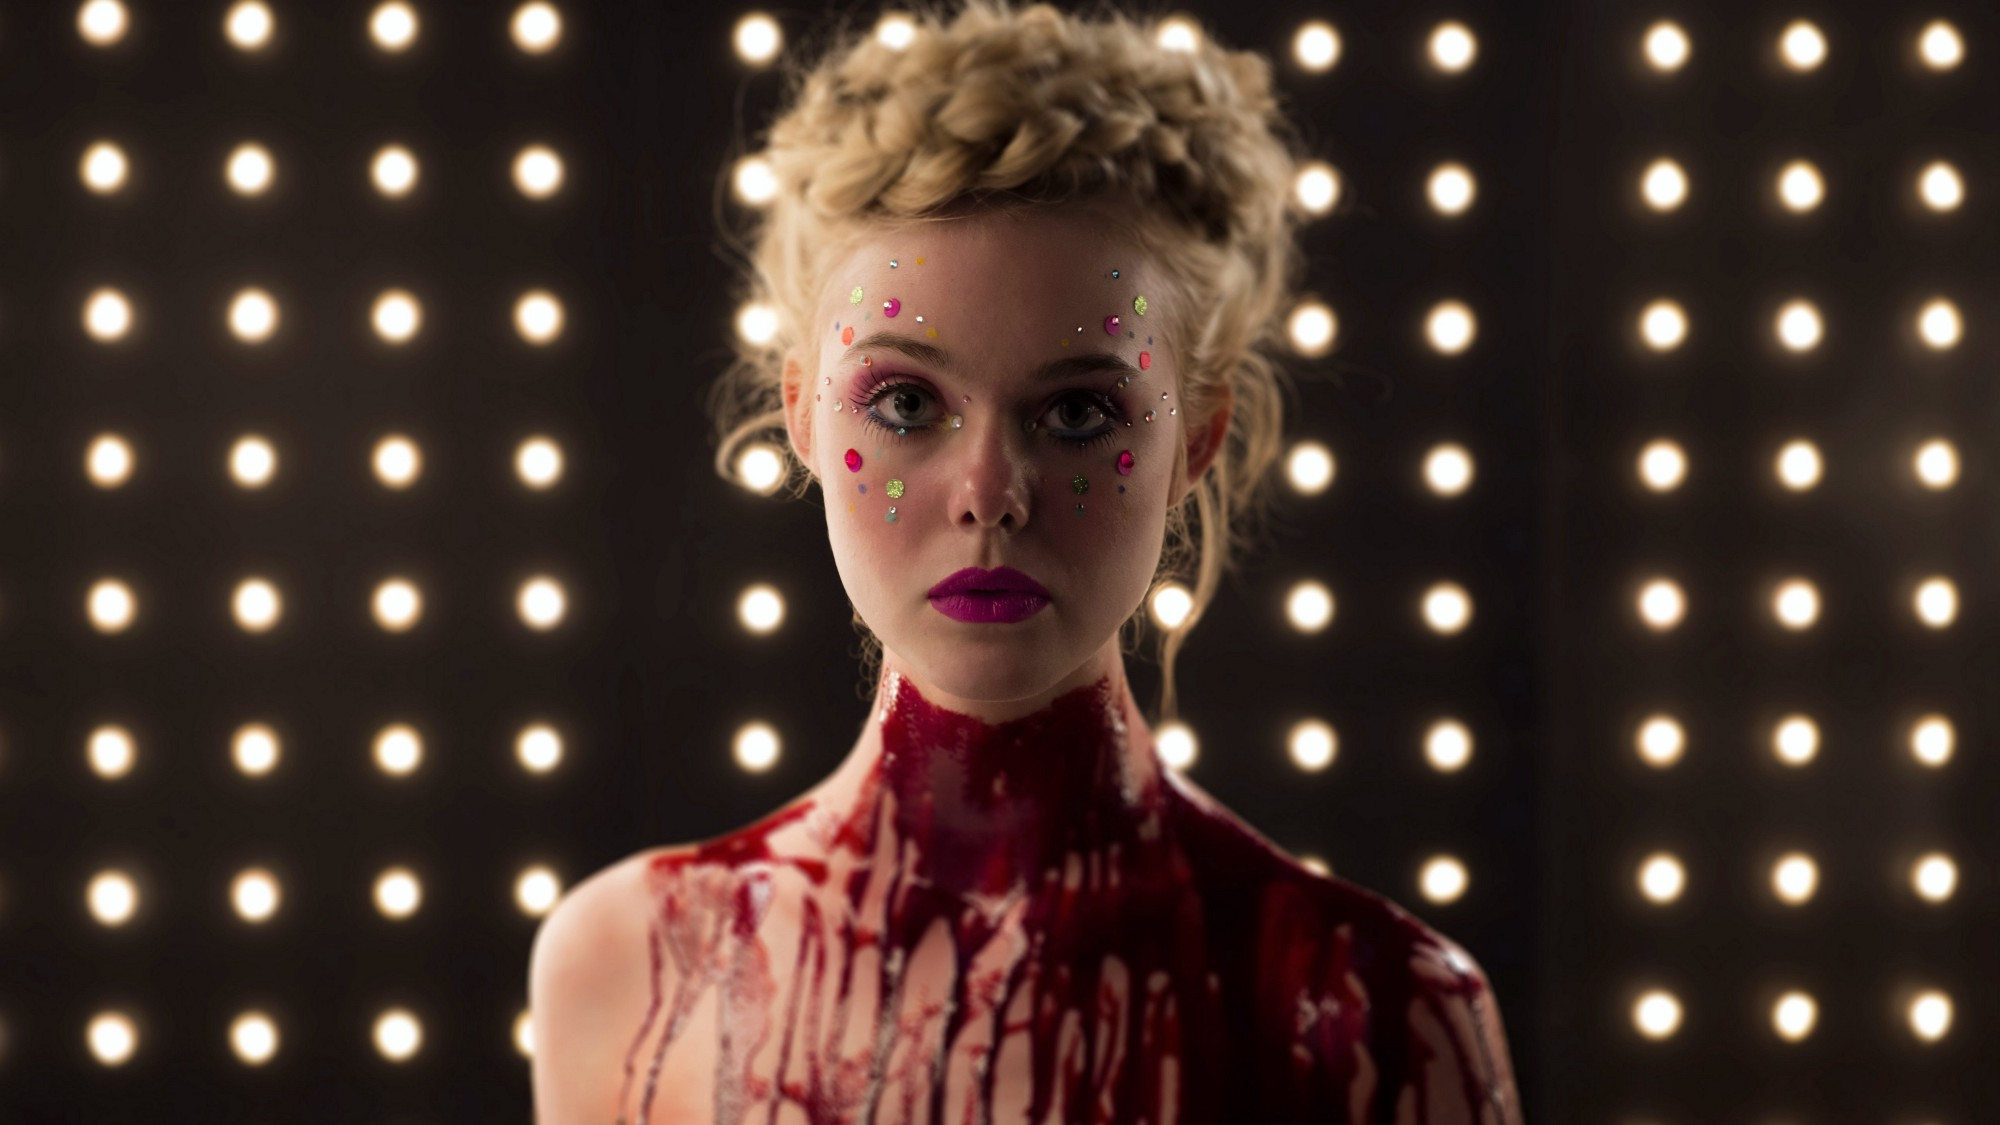 Neon démon / The Neon Demon (2016)